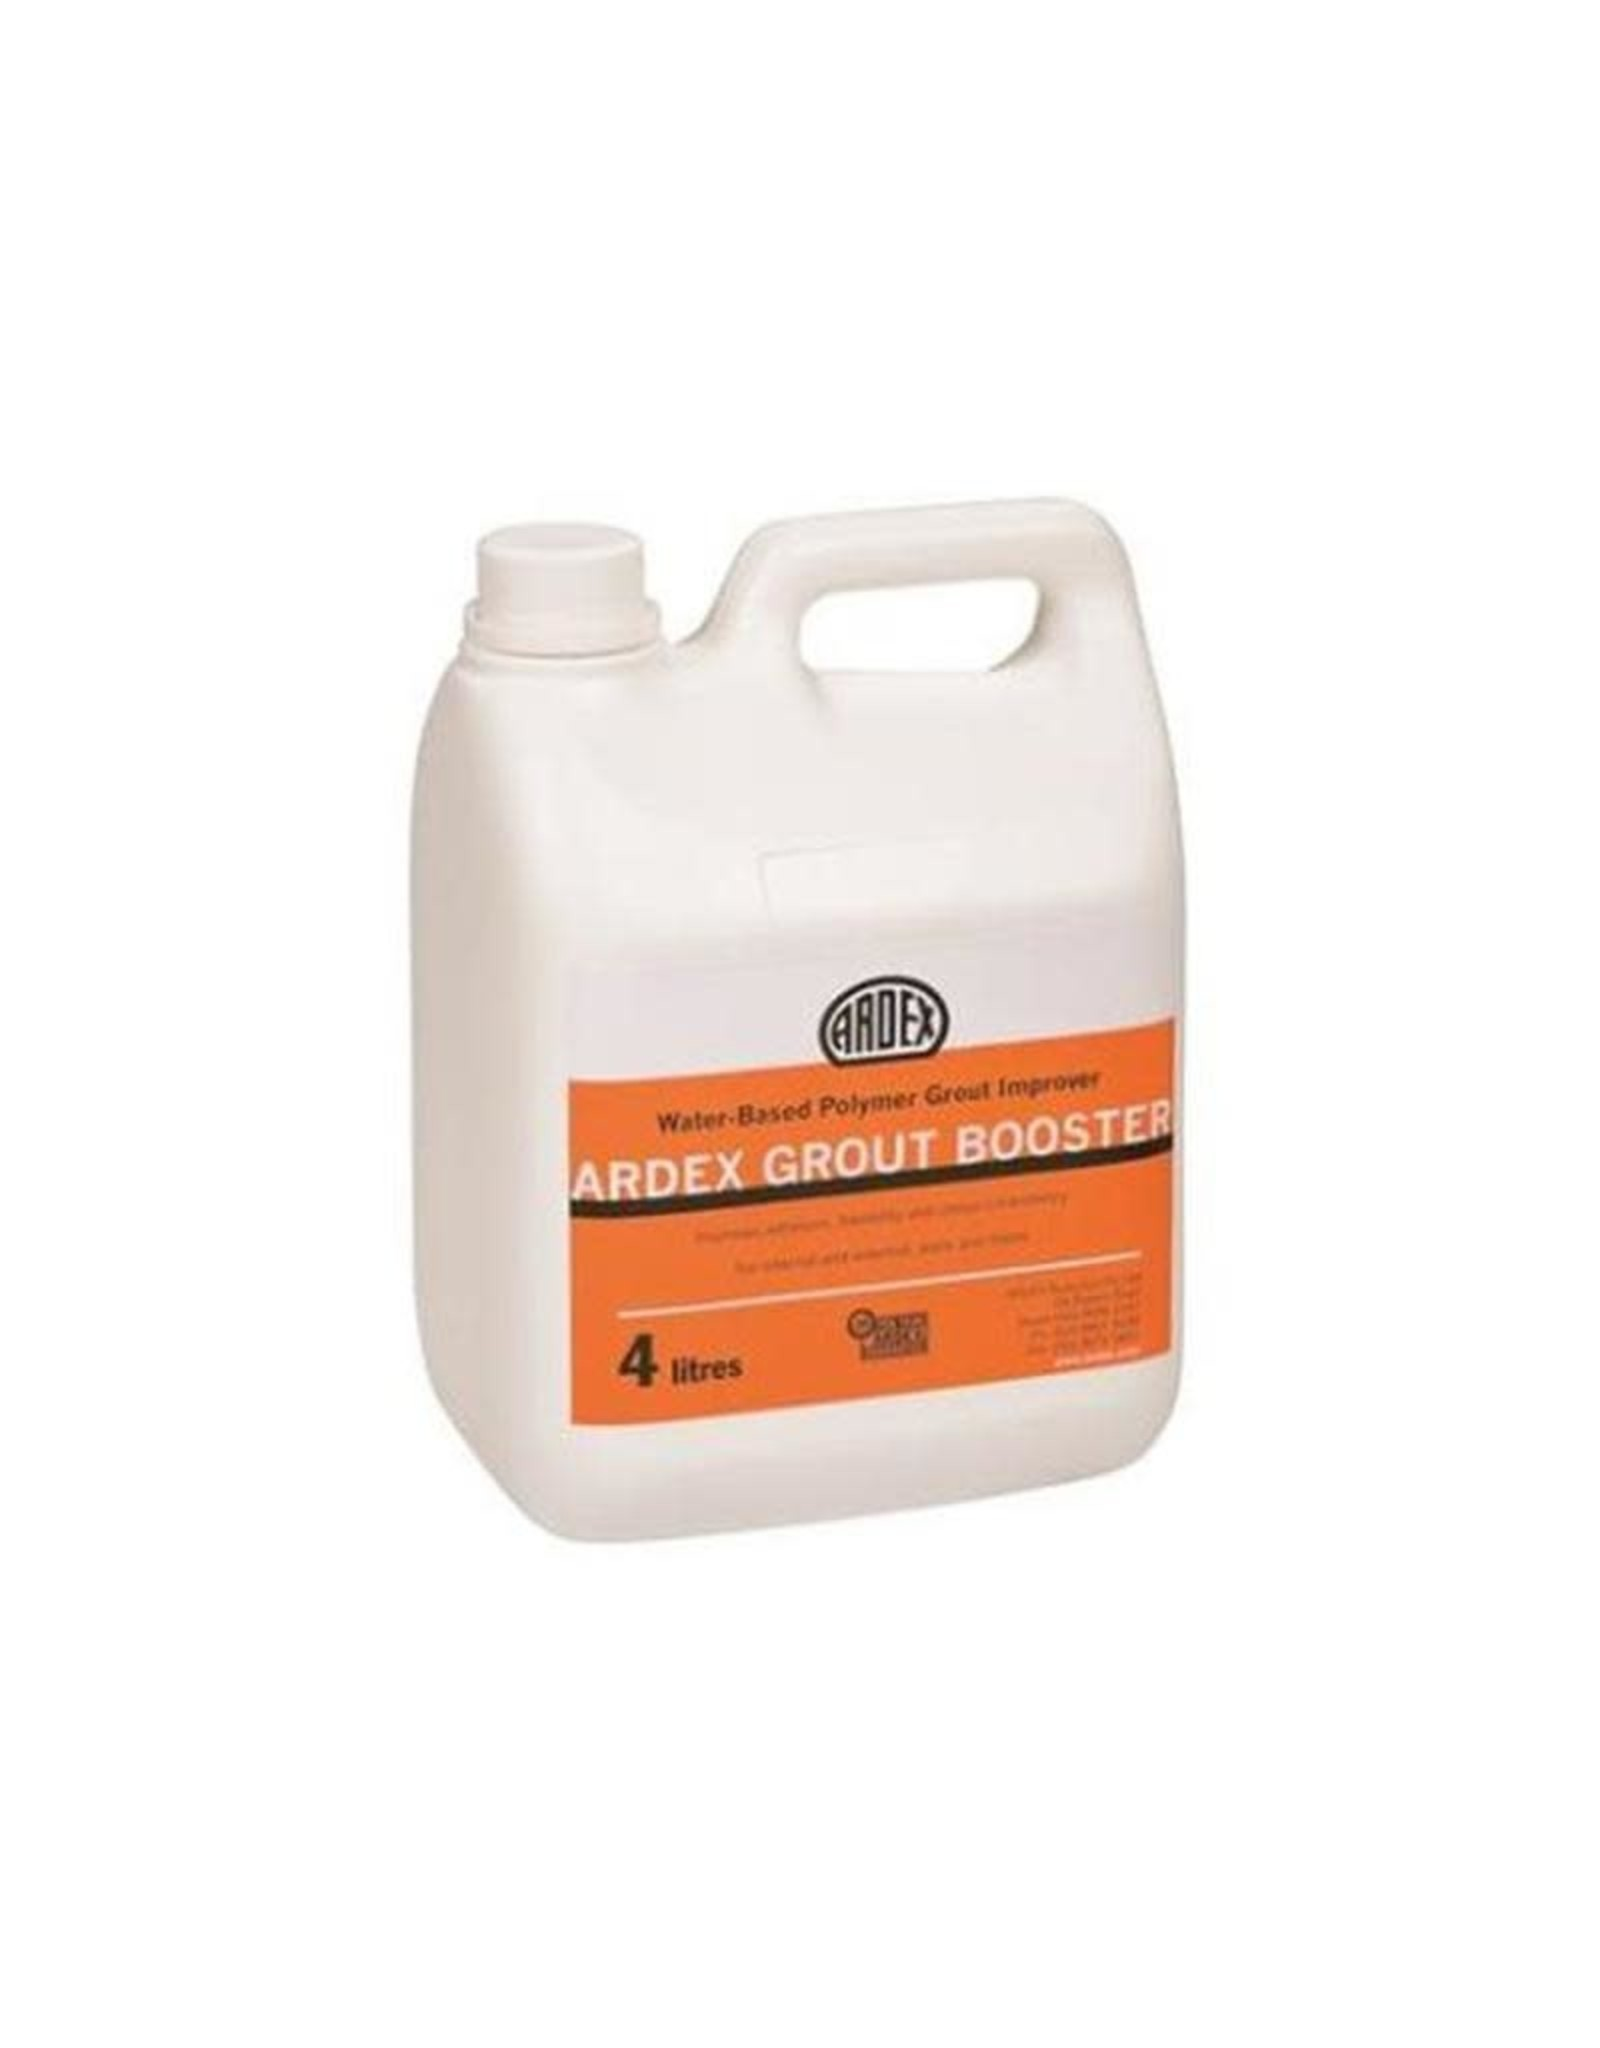 Ardex ARDEX Grout Booster 4 Litre